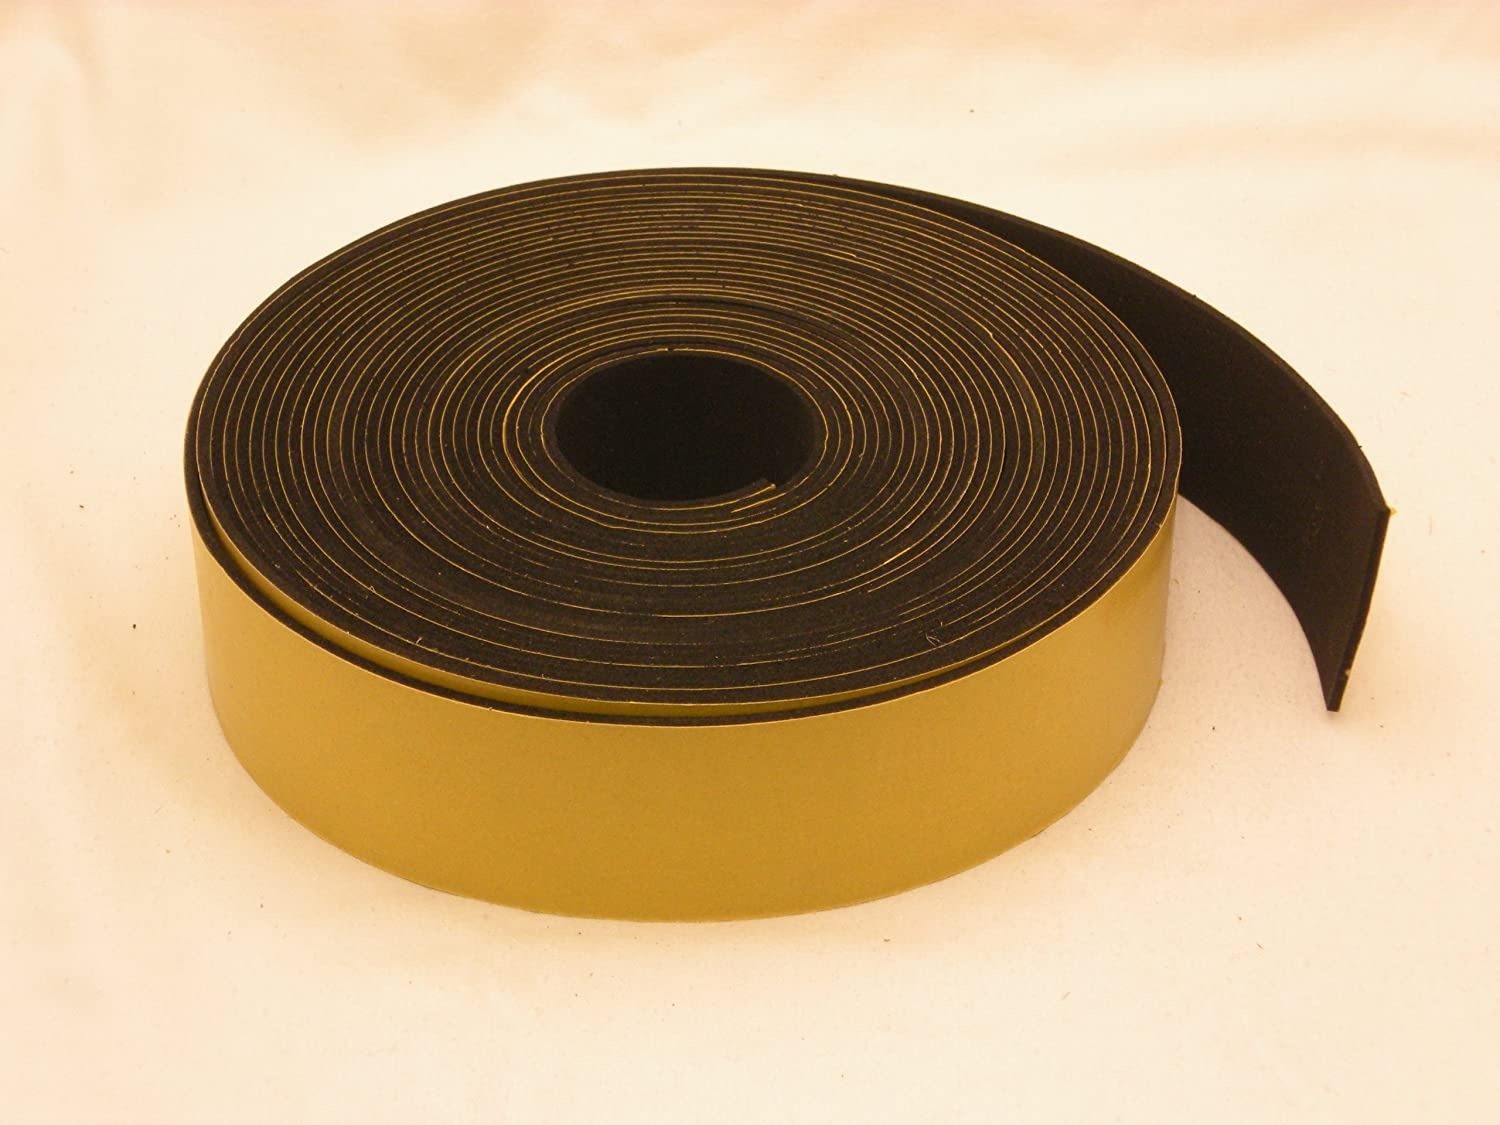 Neoprene Rubber self adhesive strip 1 1 2 wide x 1 16 thick x 33 feet long